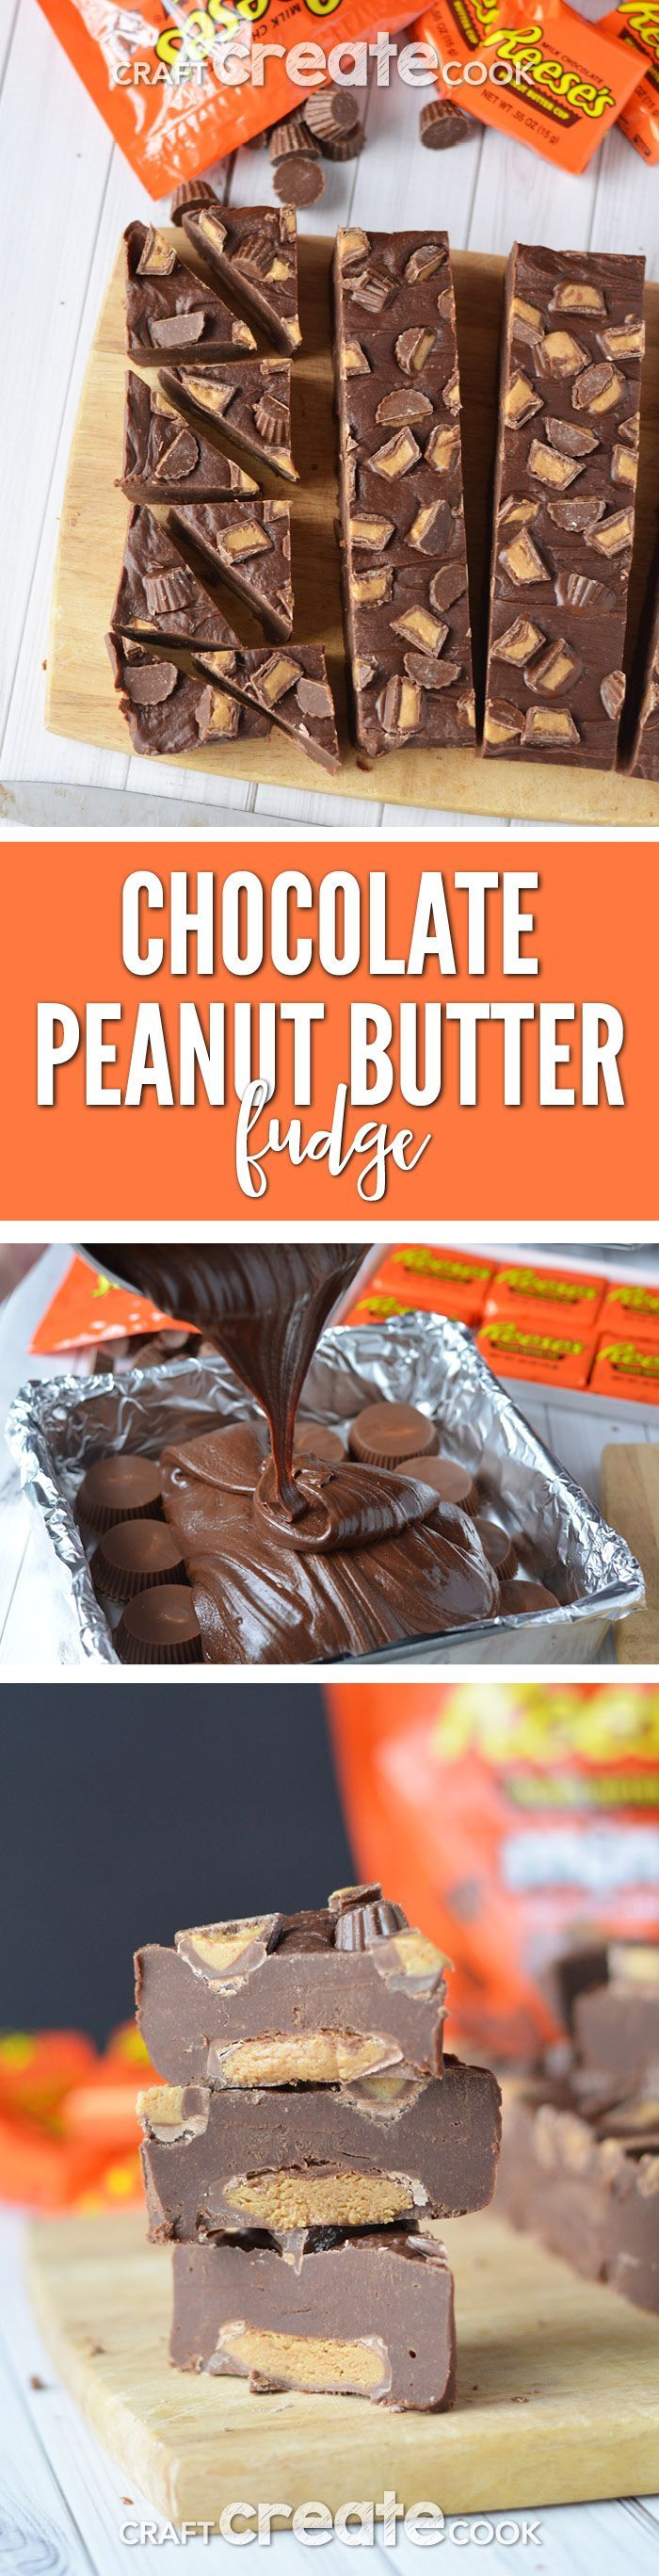 You'll be surprised how easy it is to make this decadent Reese's Chocolate Peanut Butter Fudge.  via @CraftCreatCook1